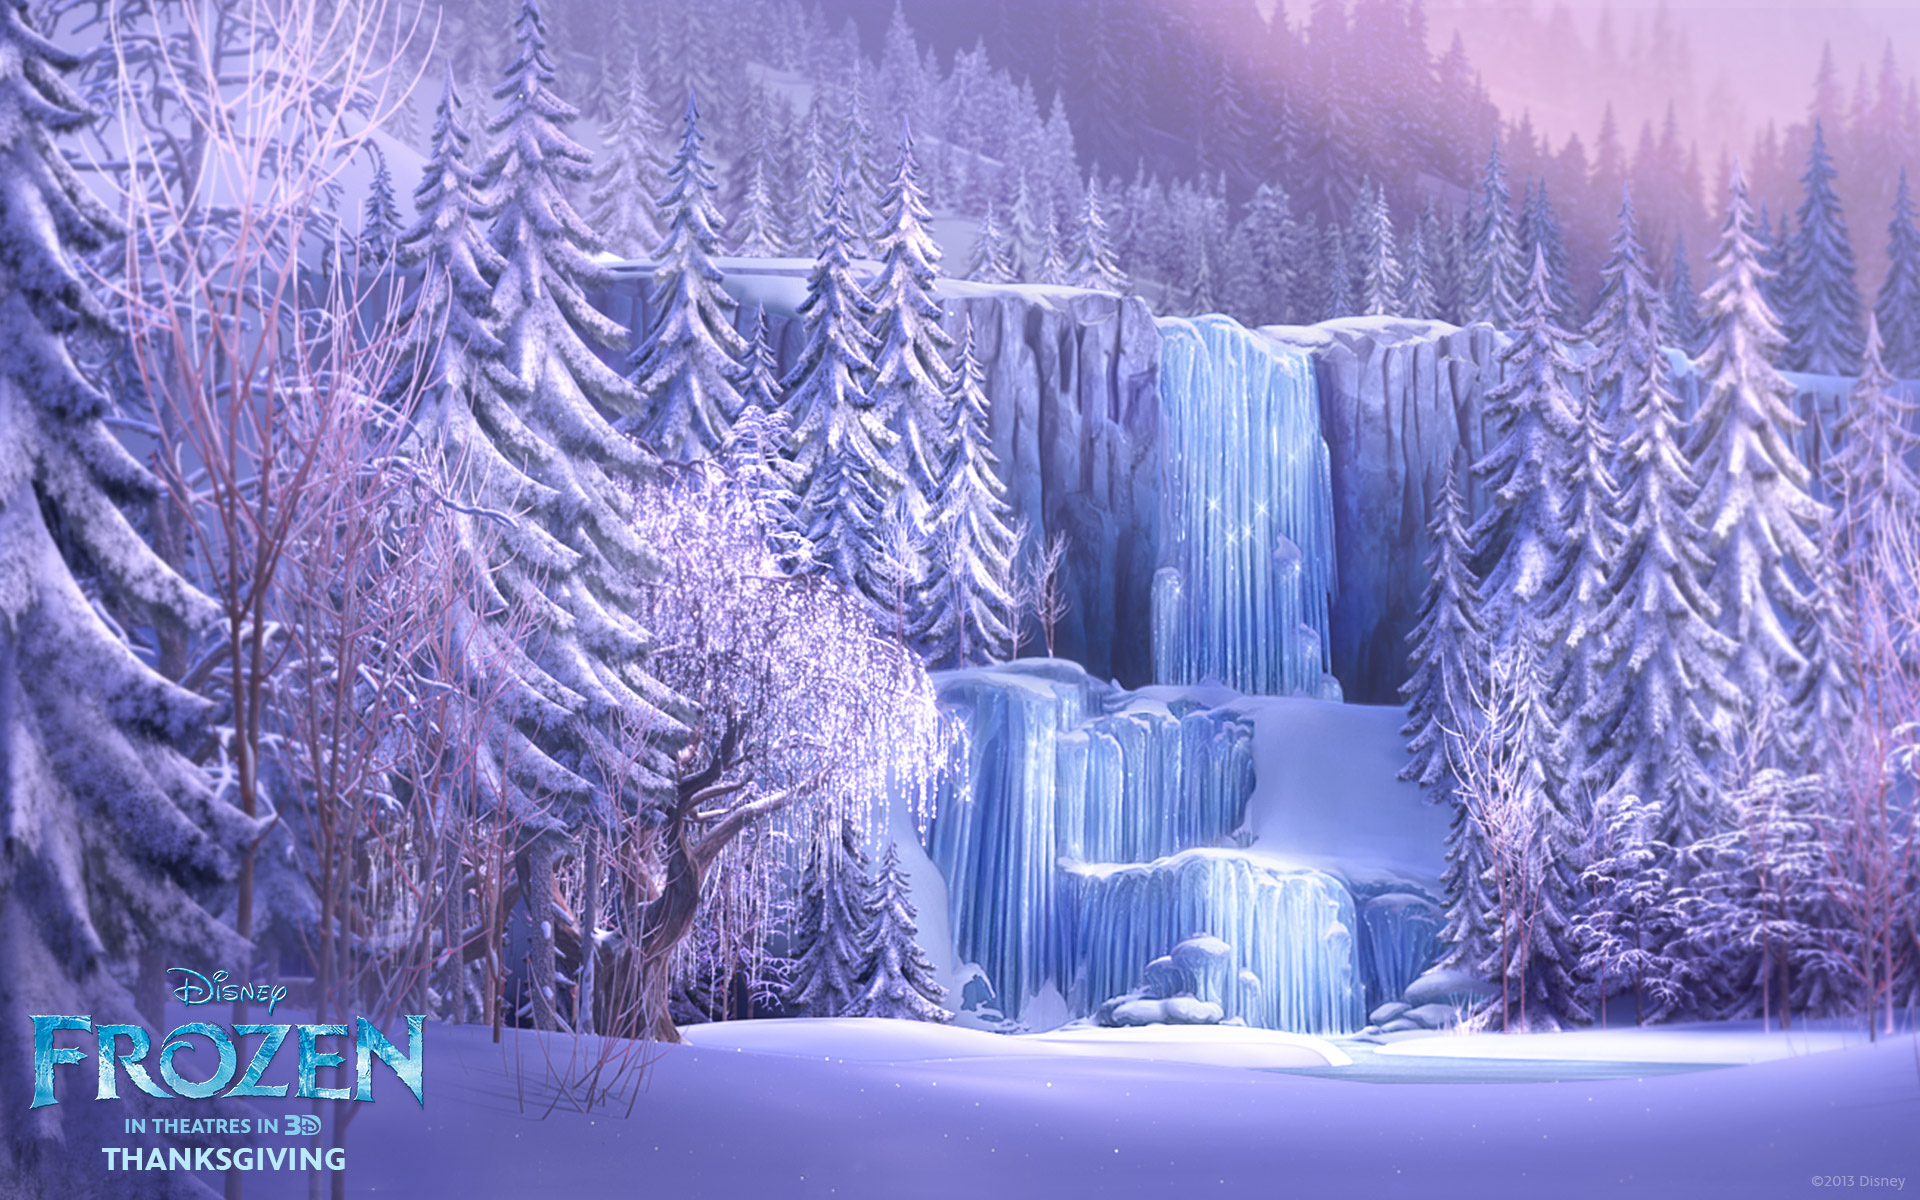 Frozen Waterfall from Disneys Frozen Desktop Wallpaper 1920x1200